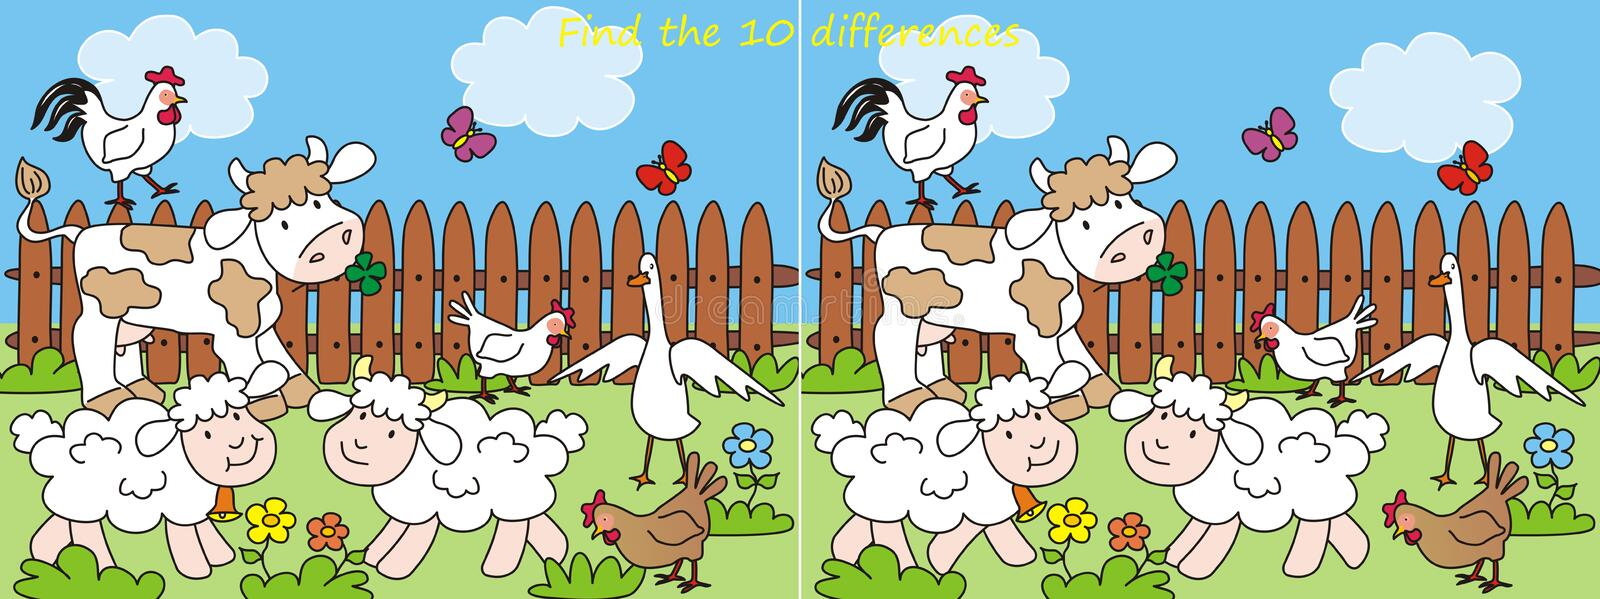 Download Farm-10 differences stock vector. Image of children, chicken - 32039867